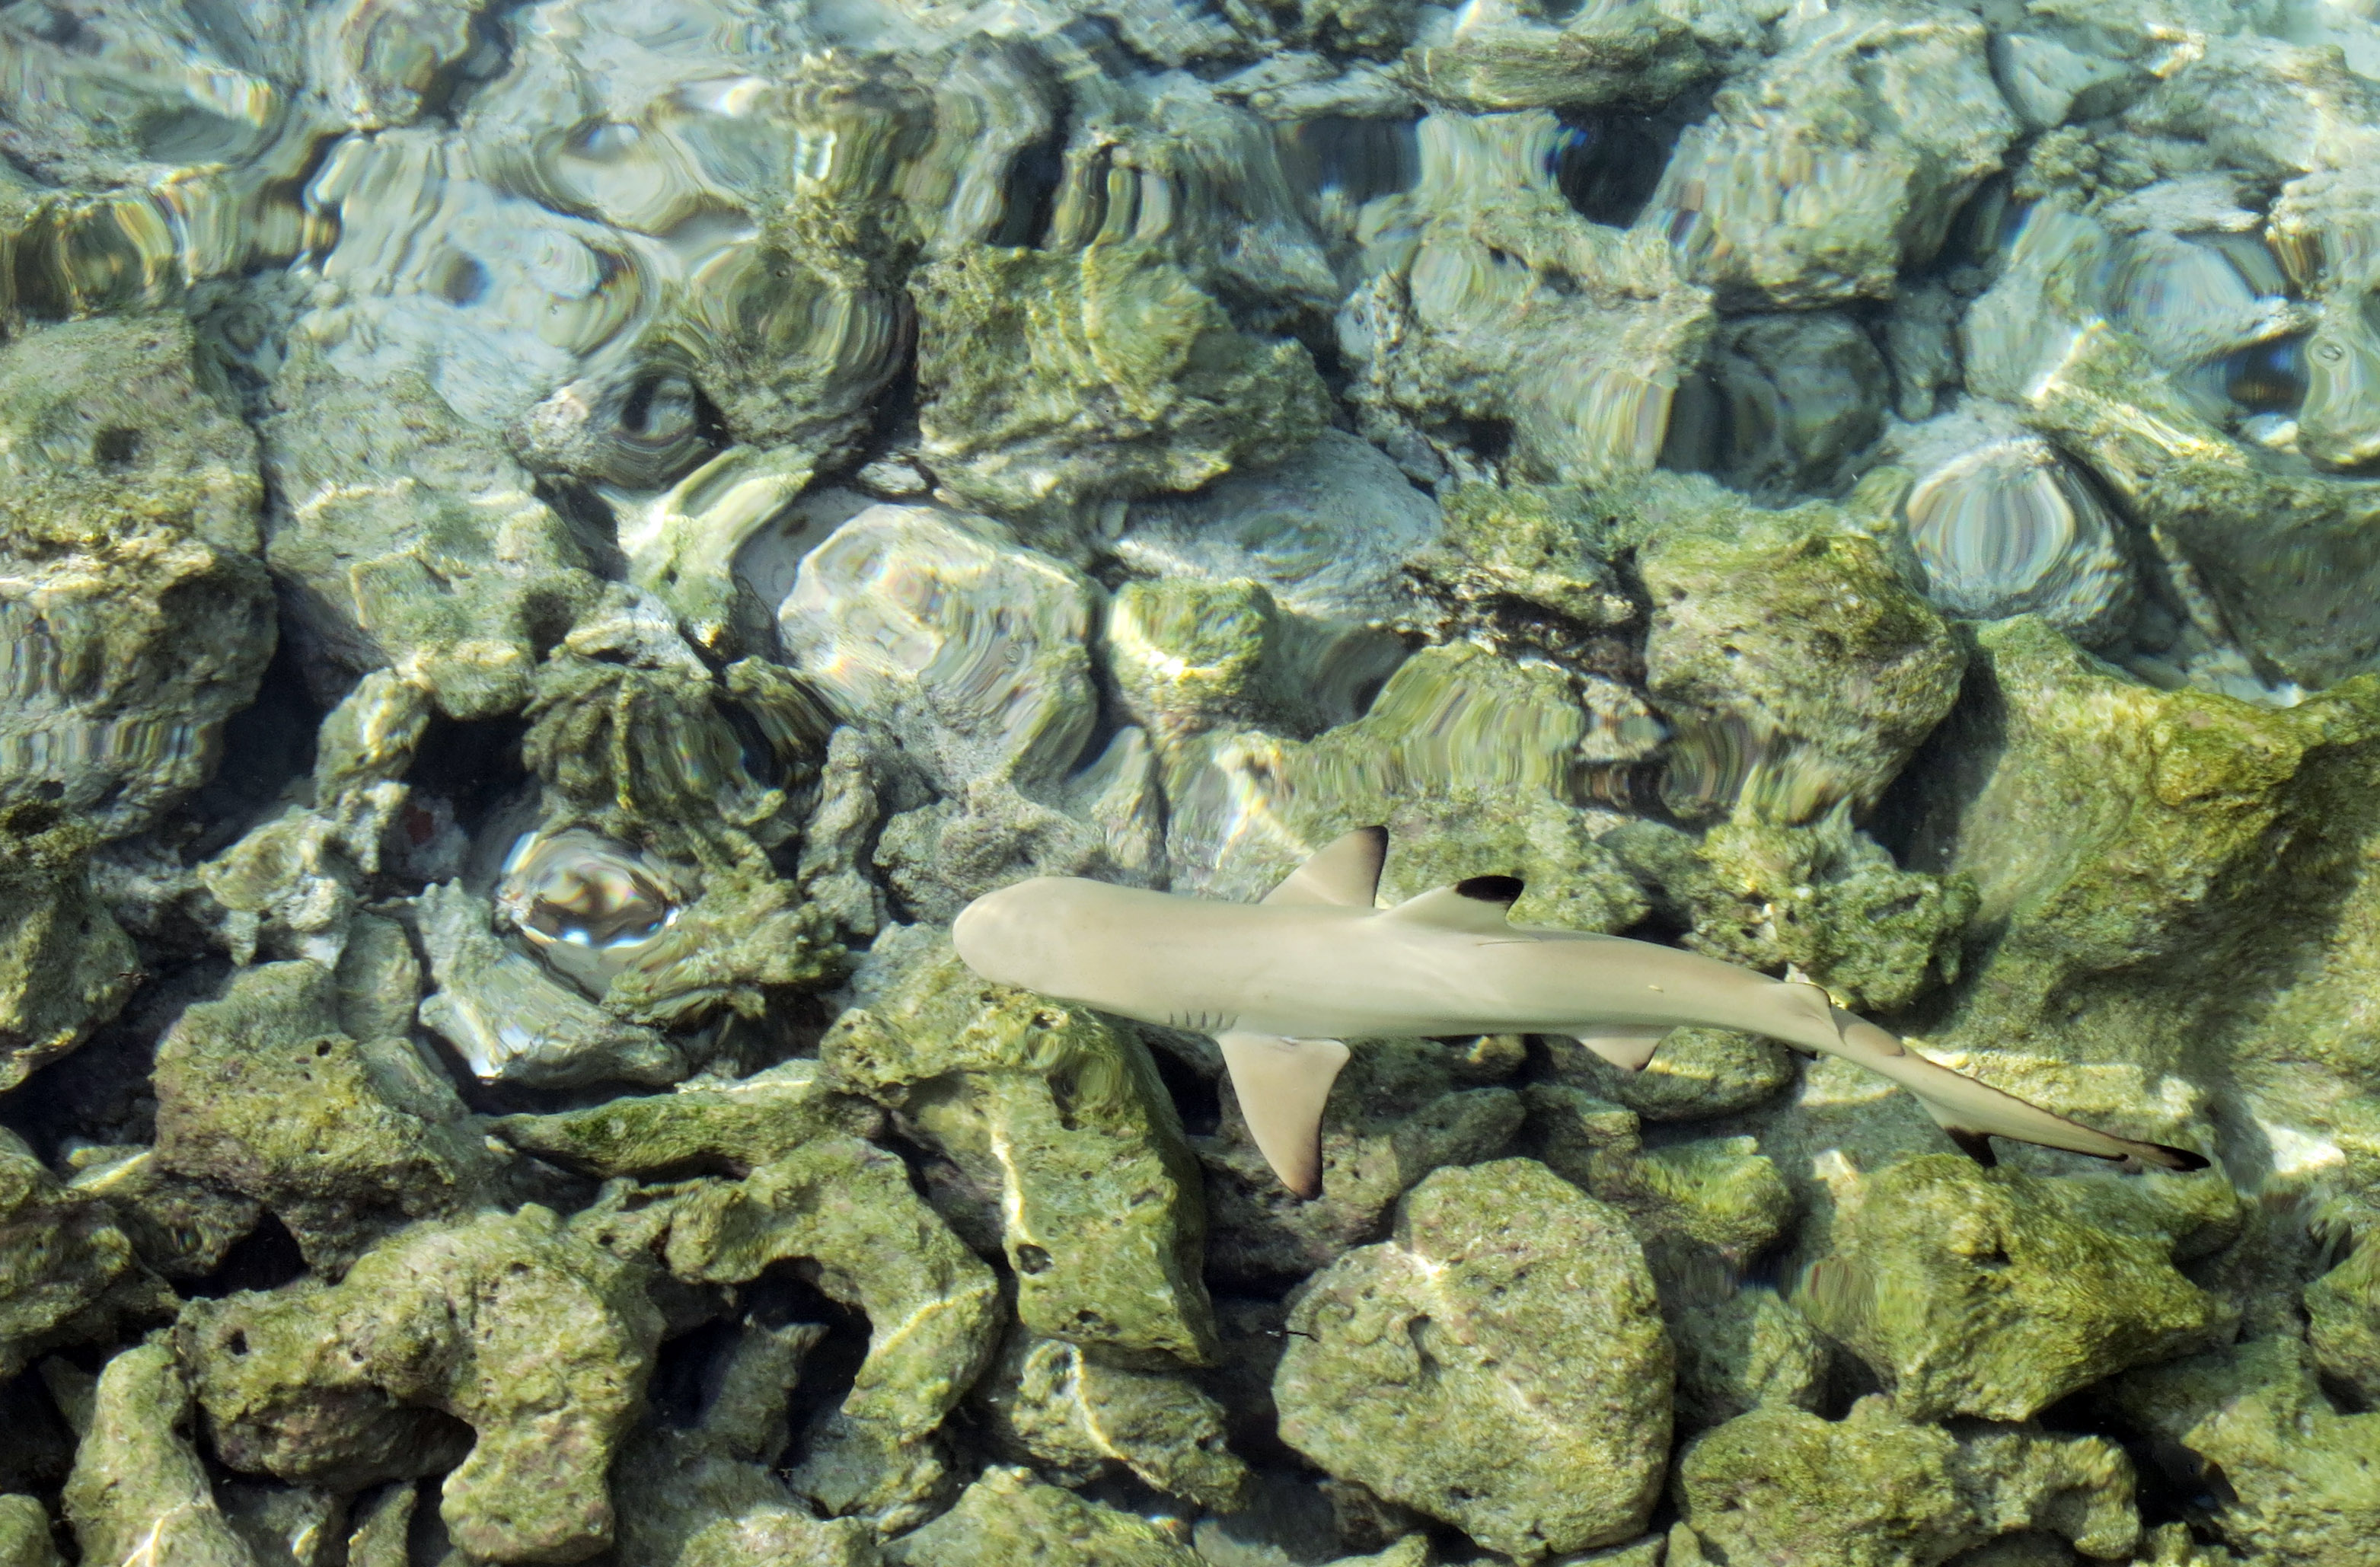 Spotted: baby black-tip shark swimming on the shallow reef.